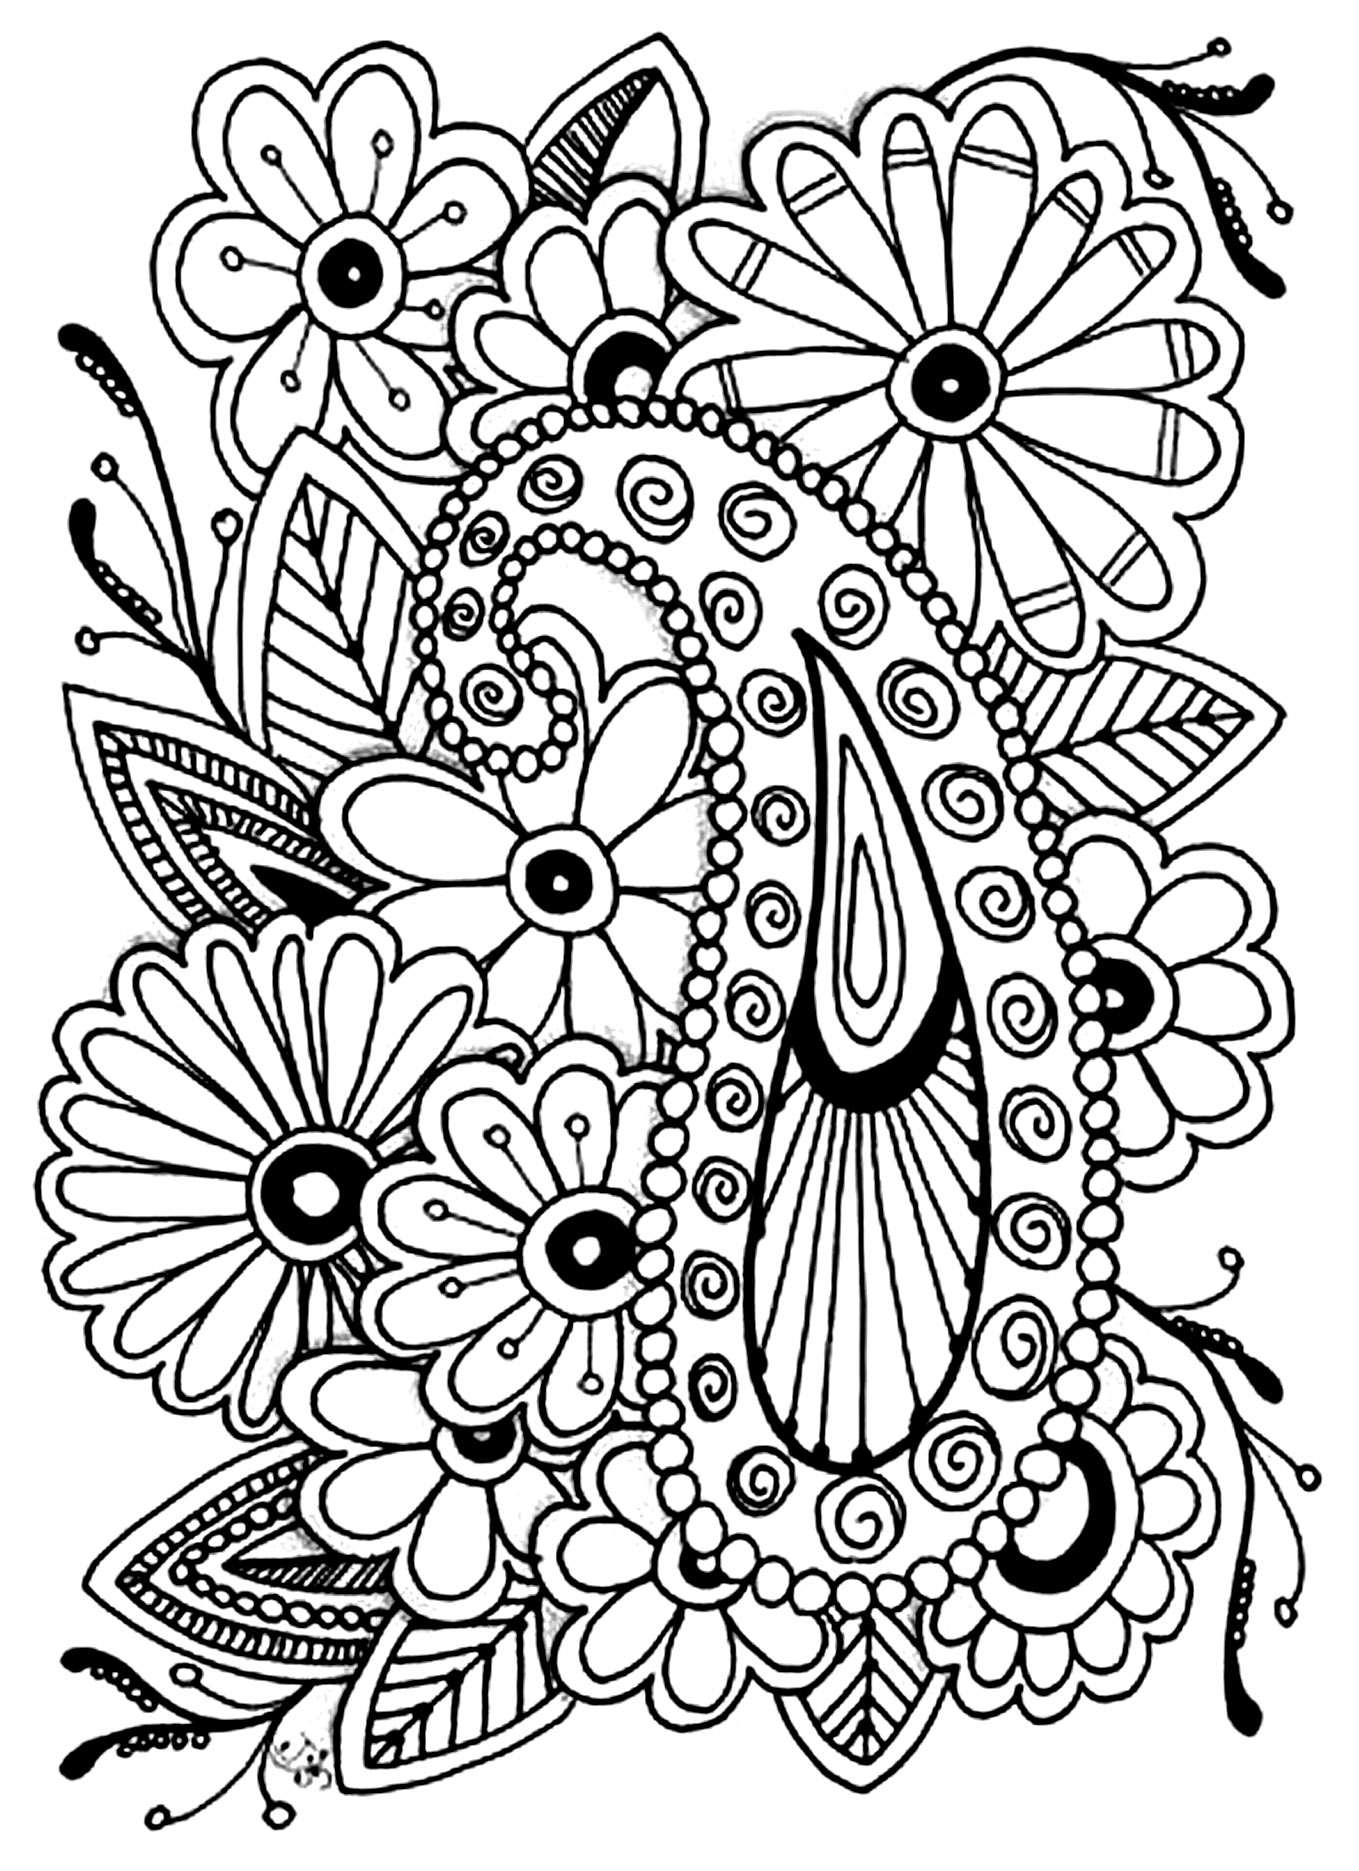 Flowers and paisley patterns Like this art? Download more of Jennifer Stay's adult coloring pages at coloringpagesbliss.com